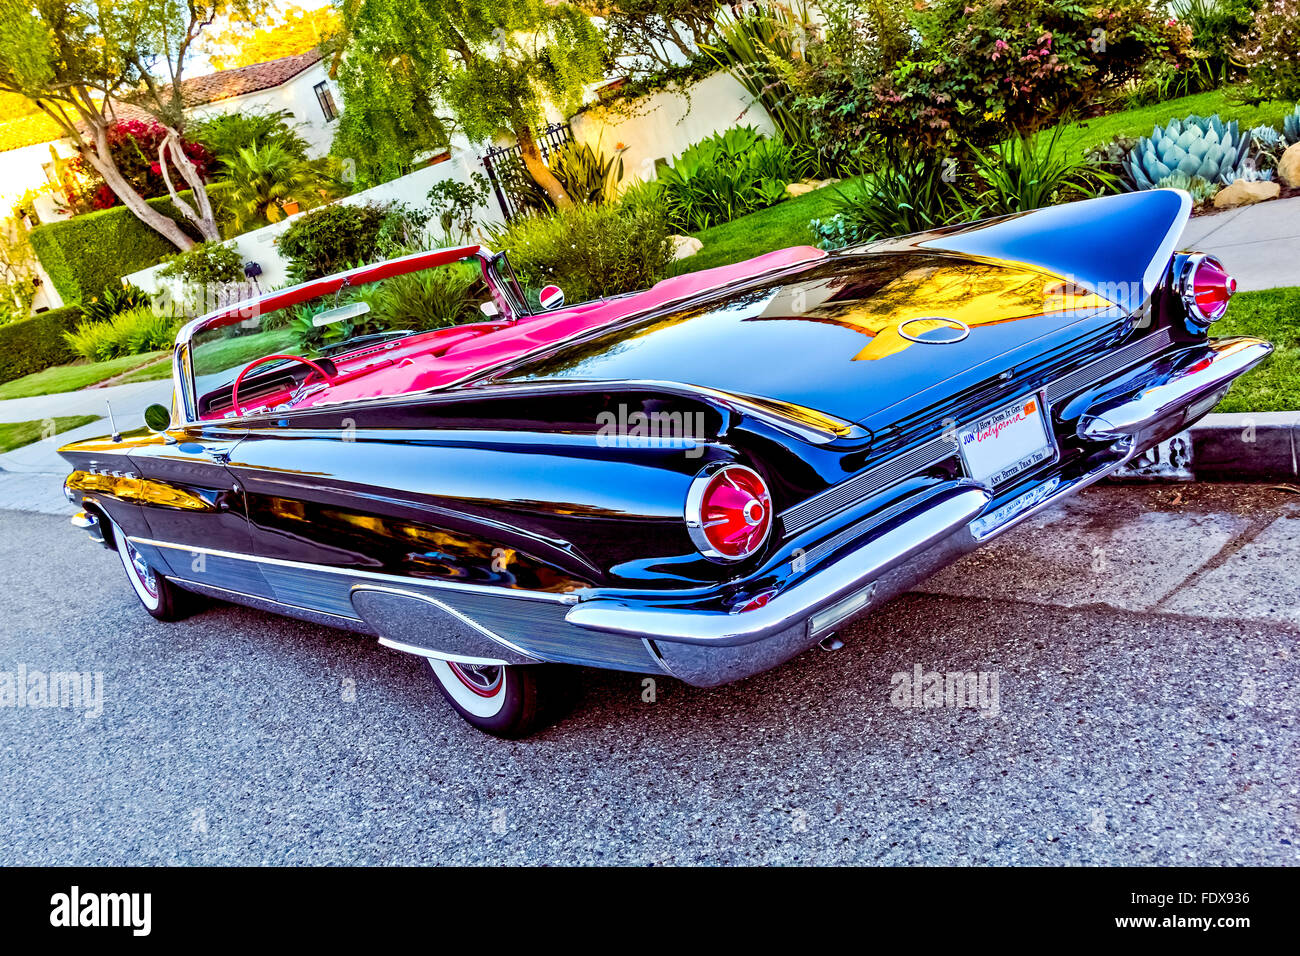 classic american convertible black car with red leather